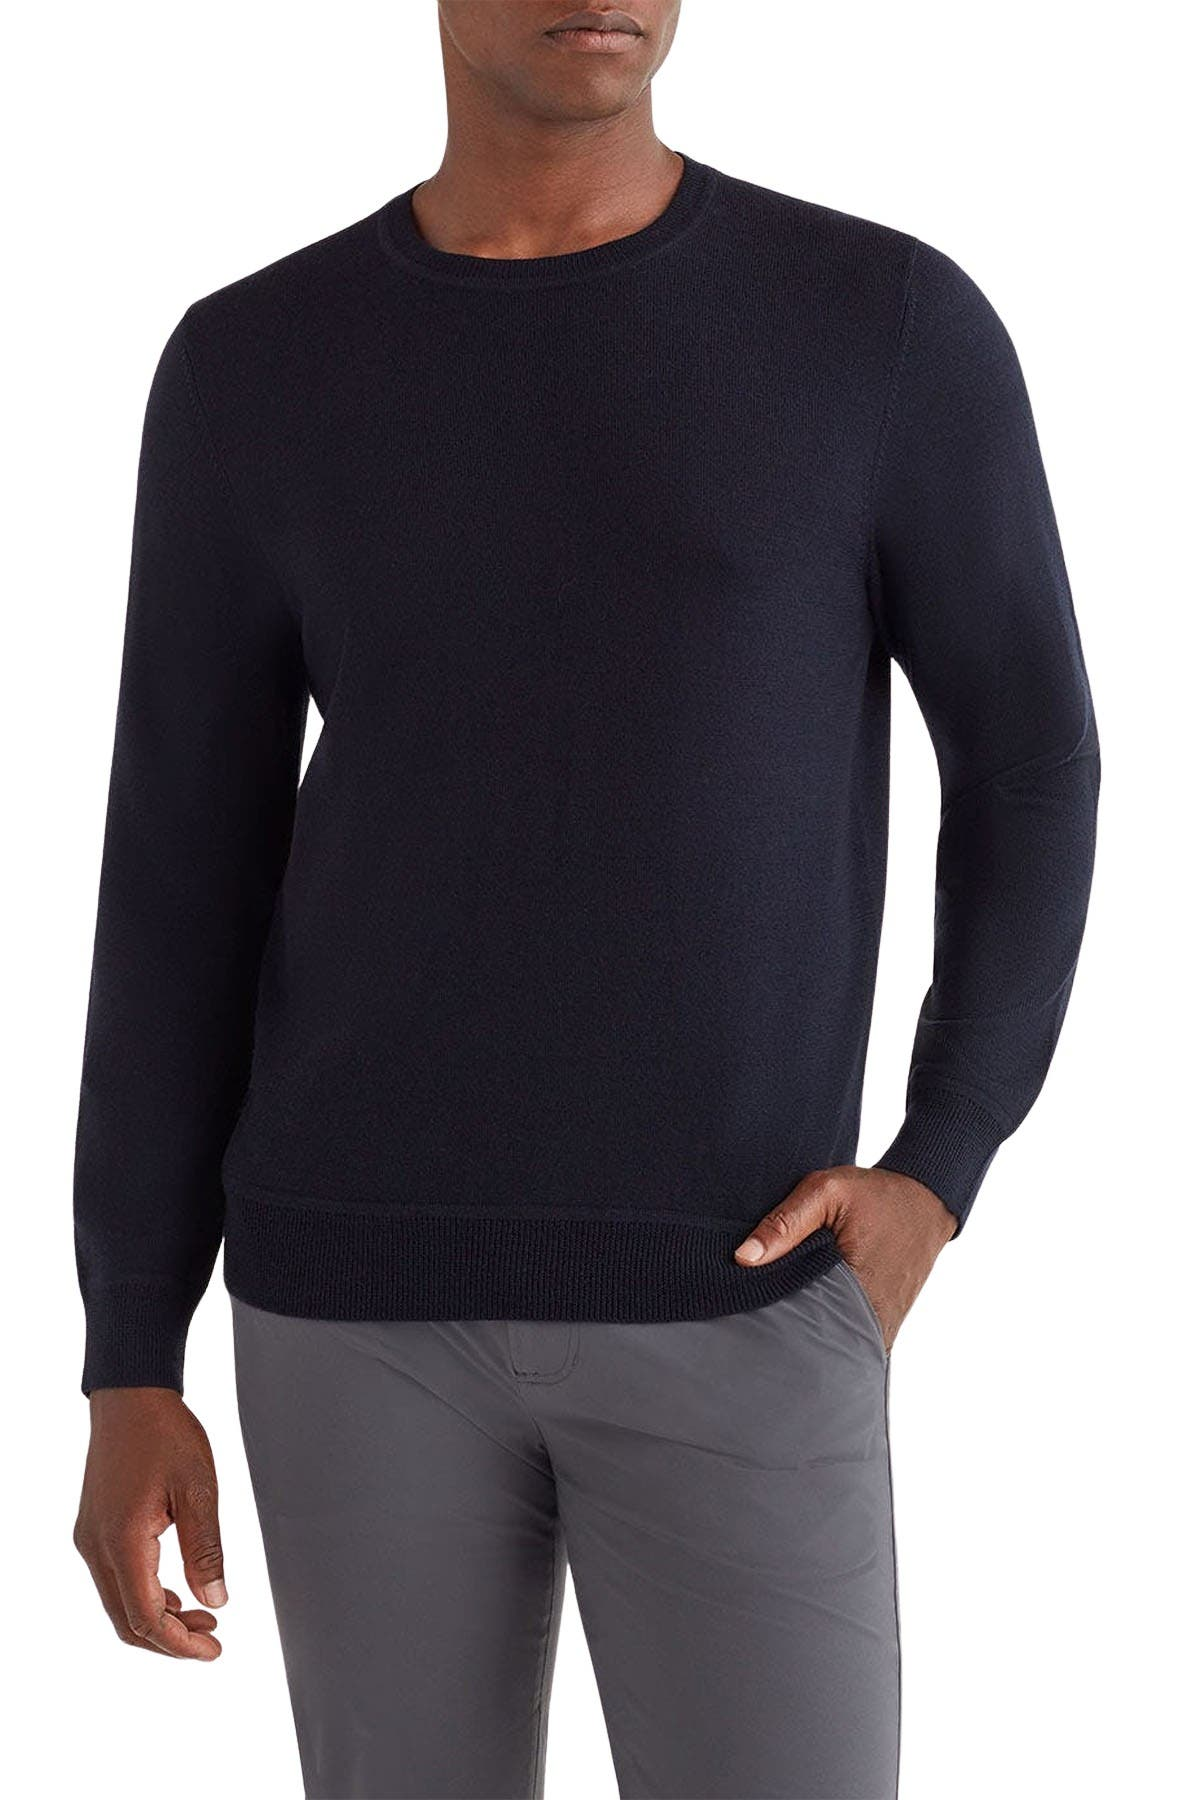 Image of 7 For All Mankind Crew Neck Merino Wool Sweater